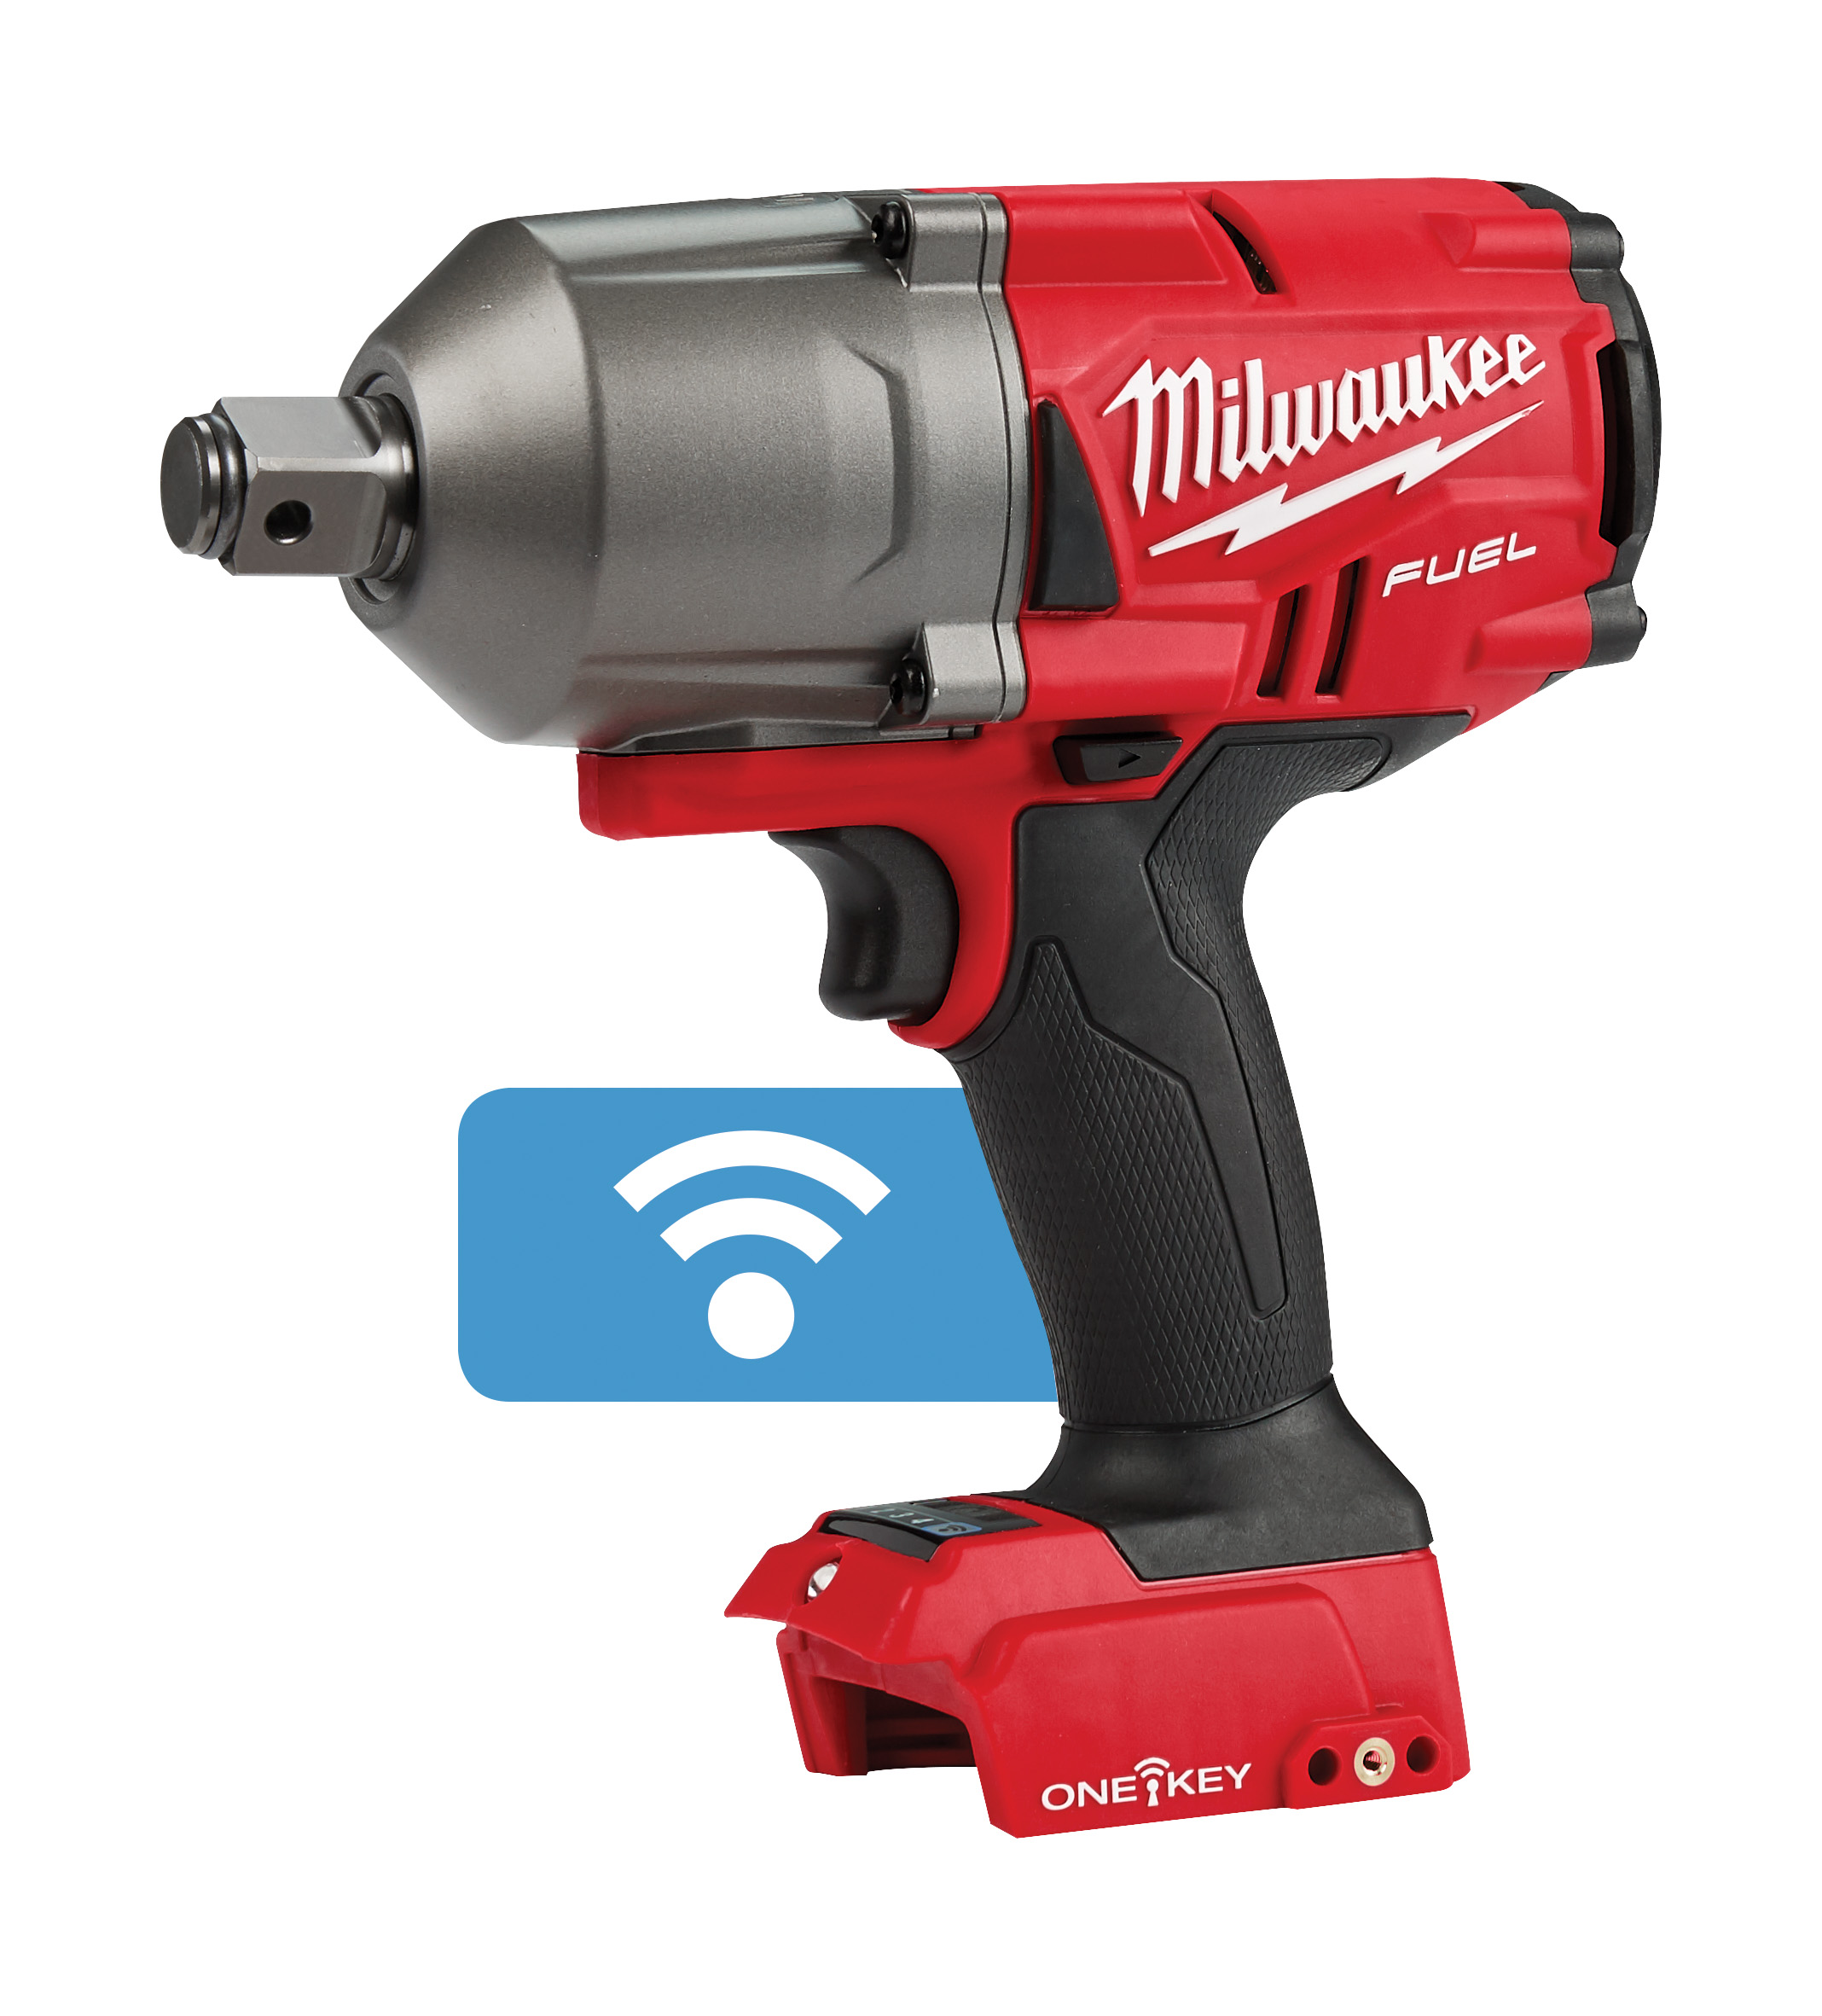 Milwaukee® M18™ FUEL™ ONE-KEY® 2864-20 Cordless High Torque Impact Wrench With 3/4 in Friction Ring, 3/4 in 4-Mode Straight Drive, 2100 bpm, 1200/1500 ft-lb Torque, 18 VDC, 8.59 in OAL